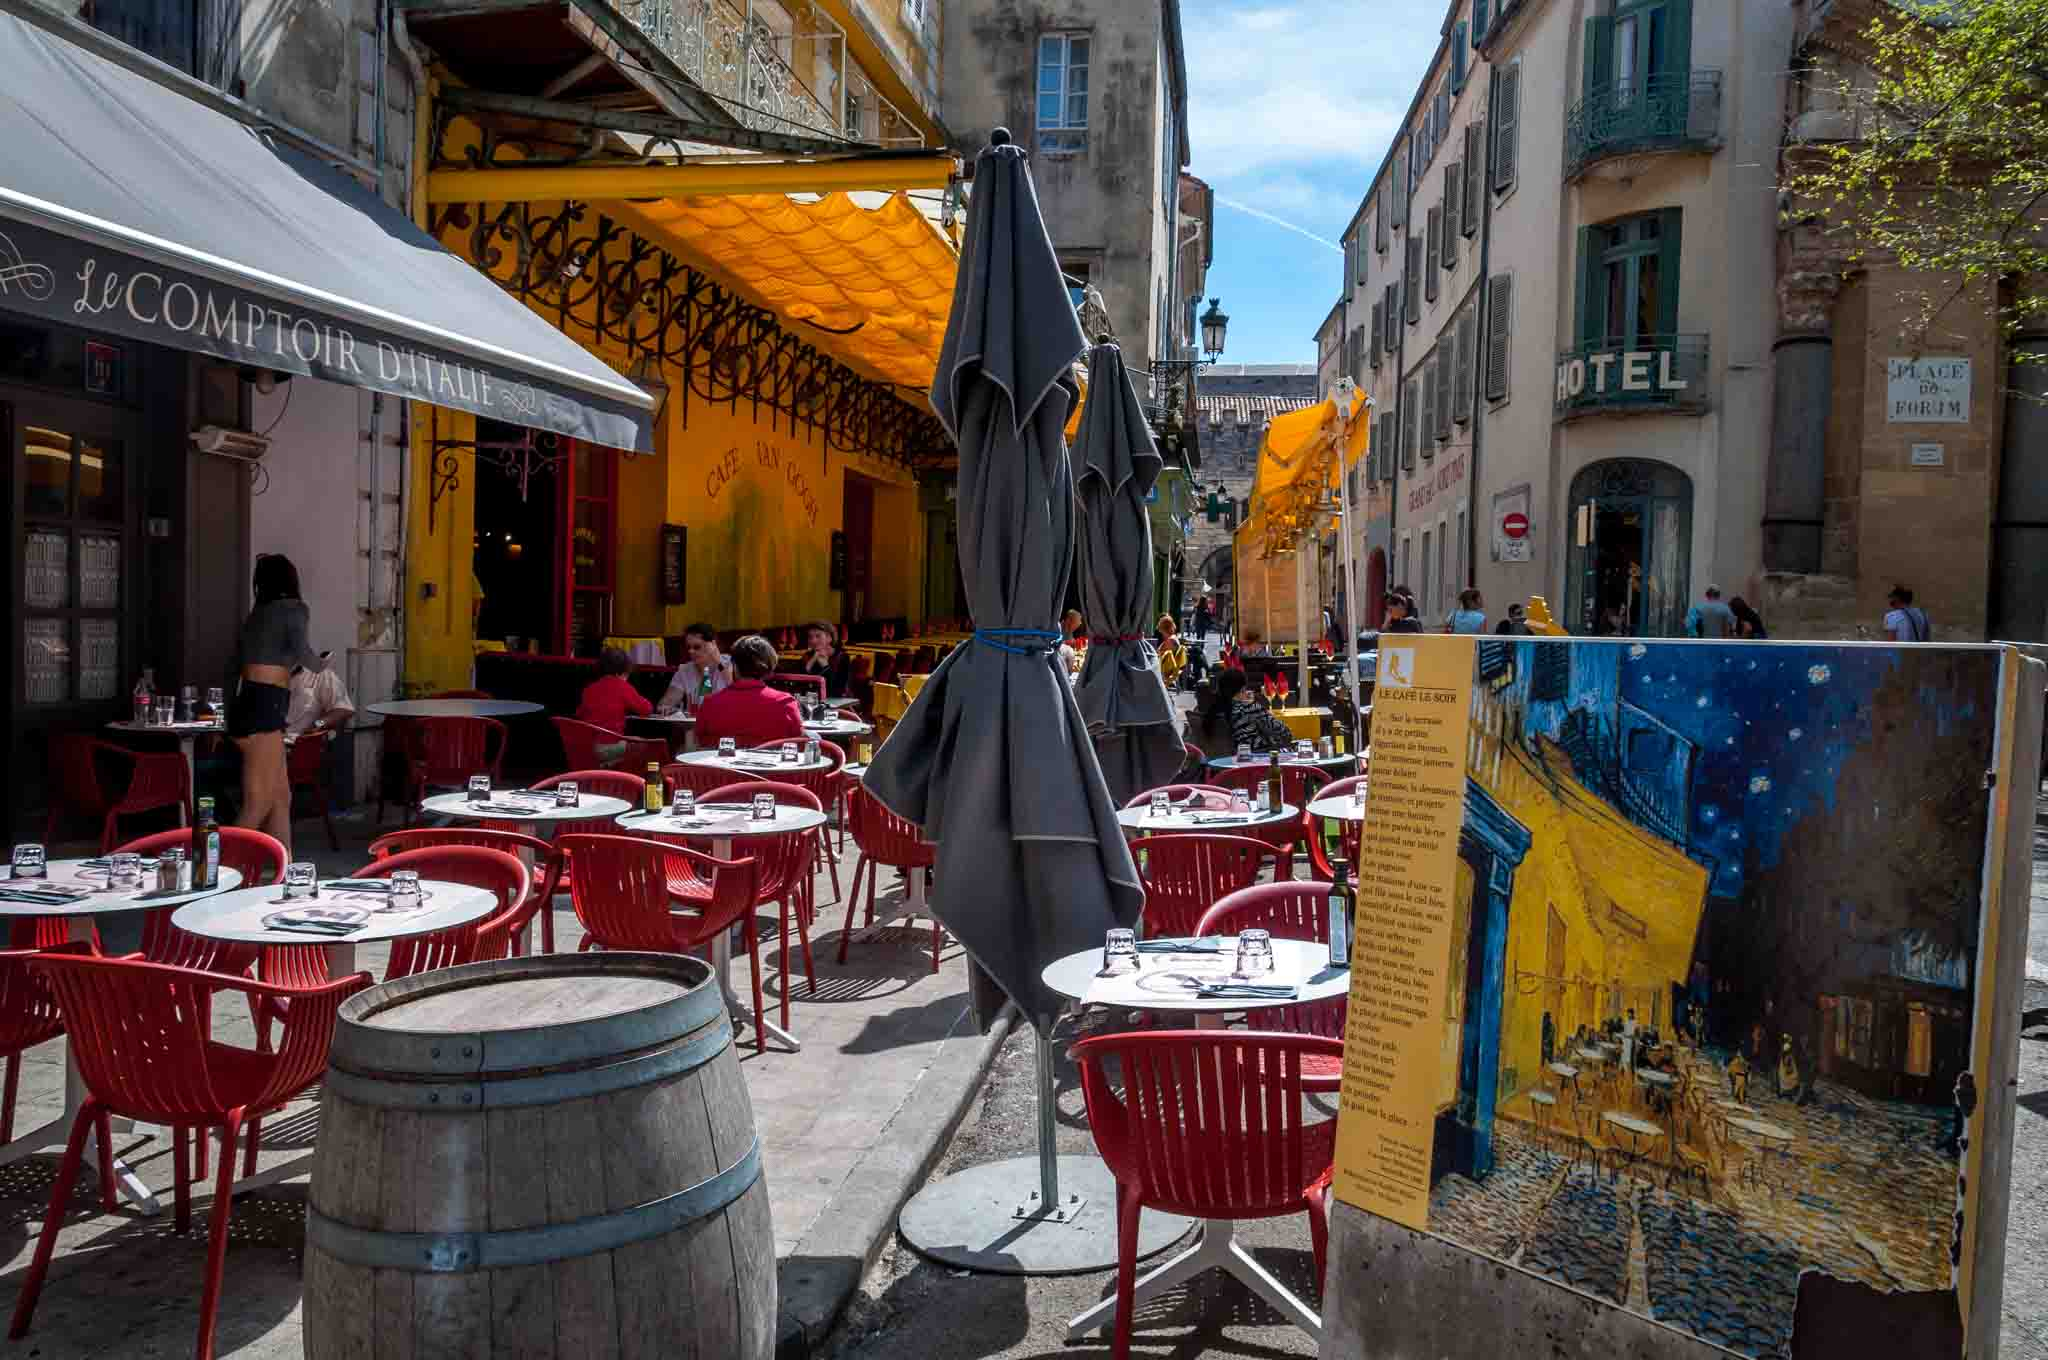 Modern-day sidewalk cafe alongside the painting van Gogh made of the site in the 1800s